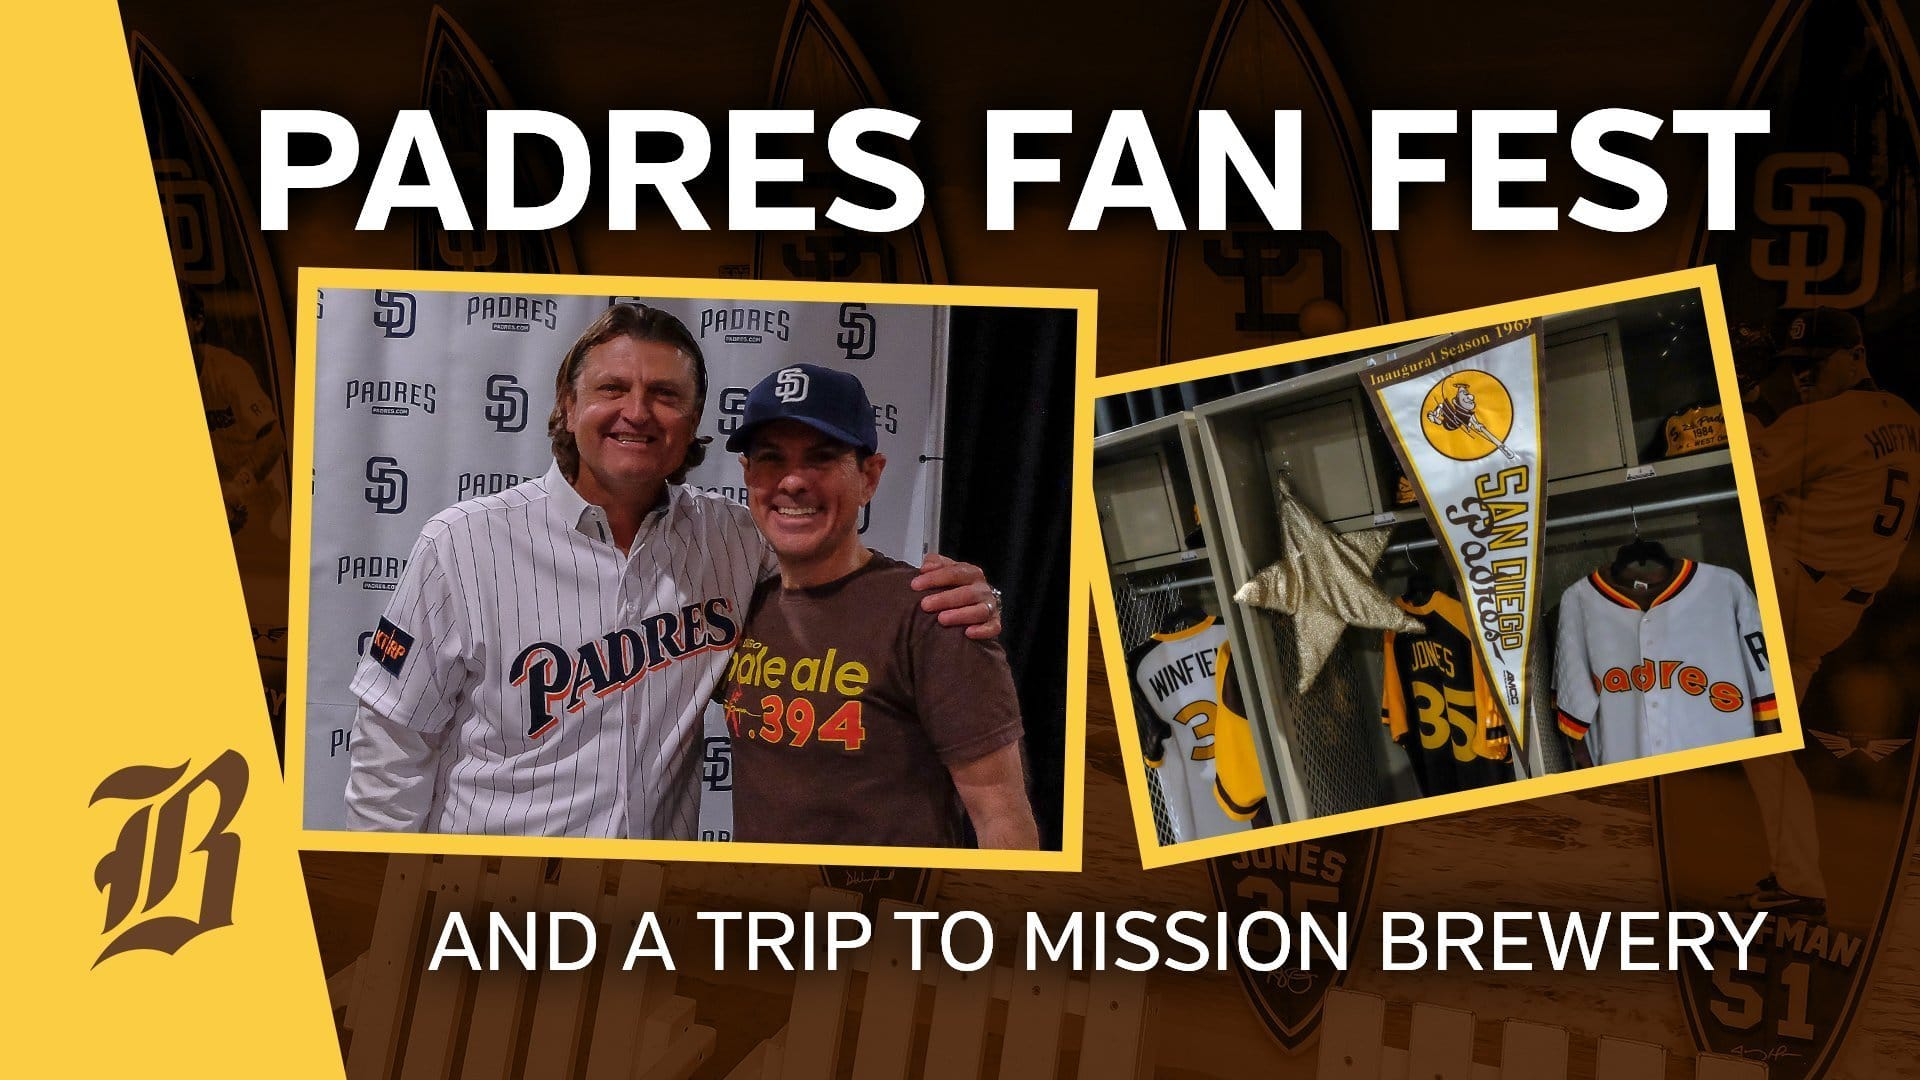 3dbbcf64480 VIDEO  San Diego Padres Fan Fest 2019 and Mission Brewery - Beer Baseball  Blog